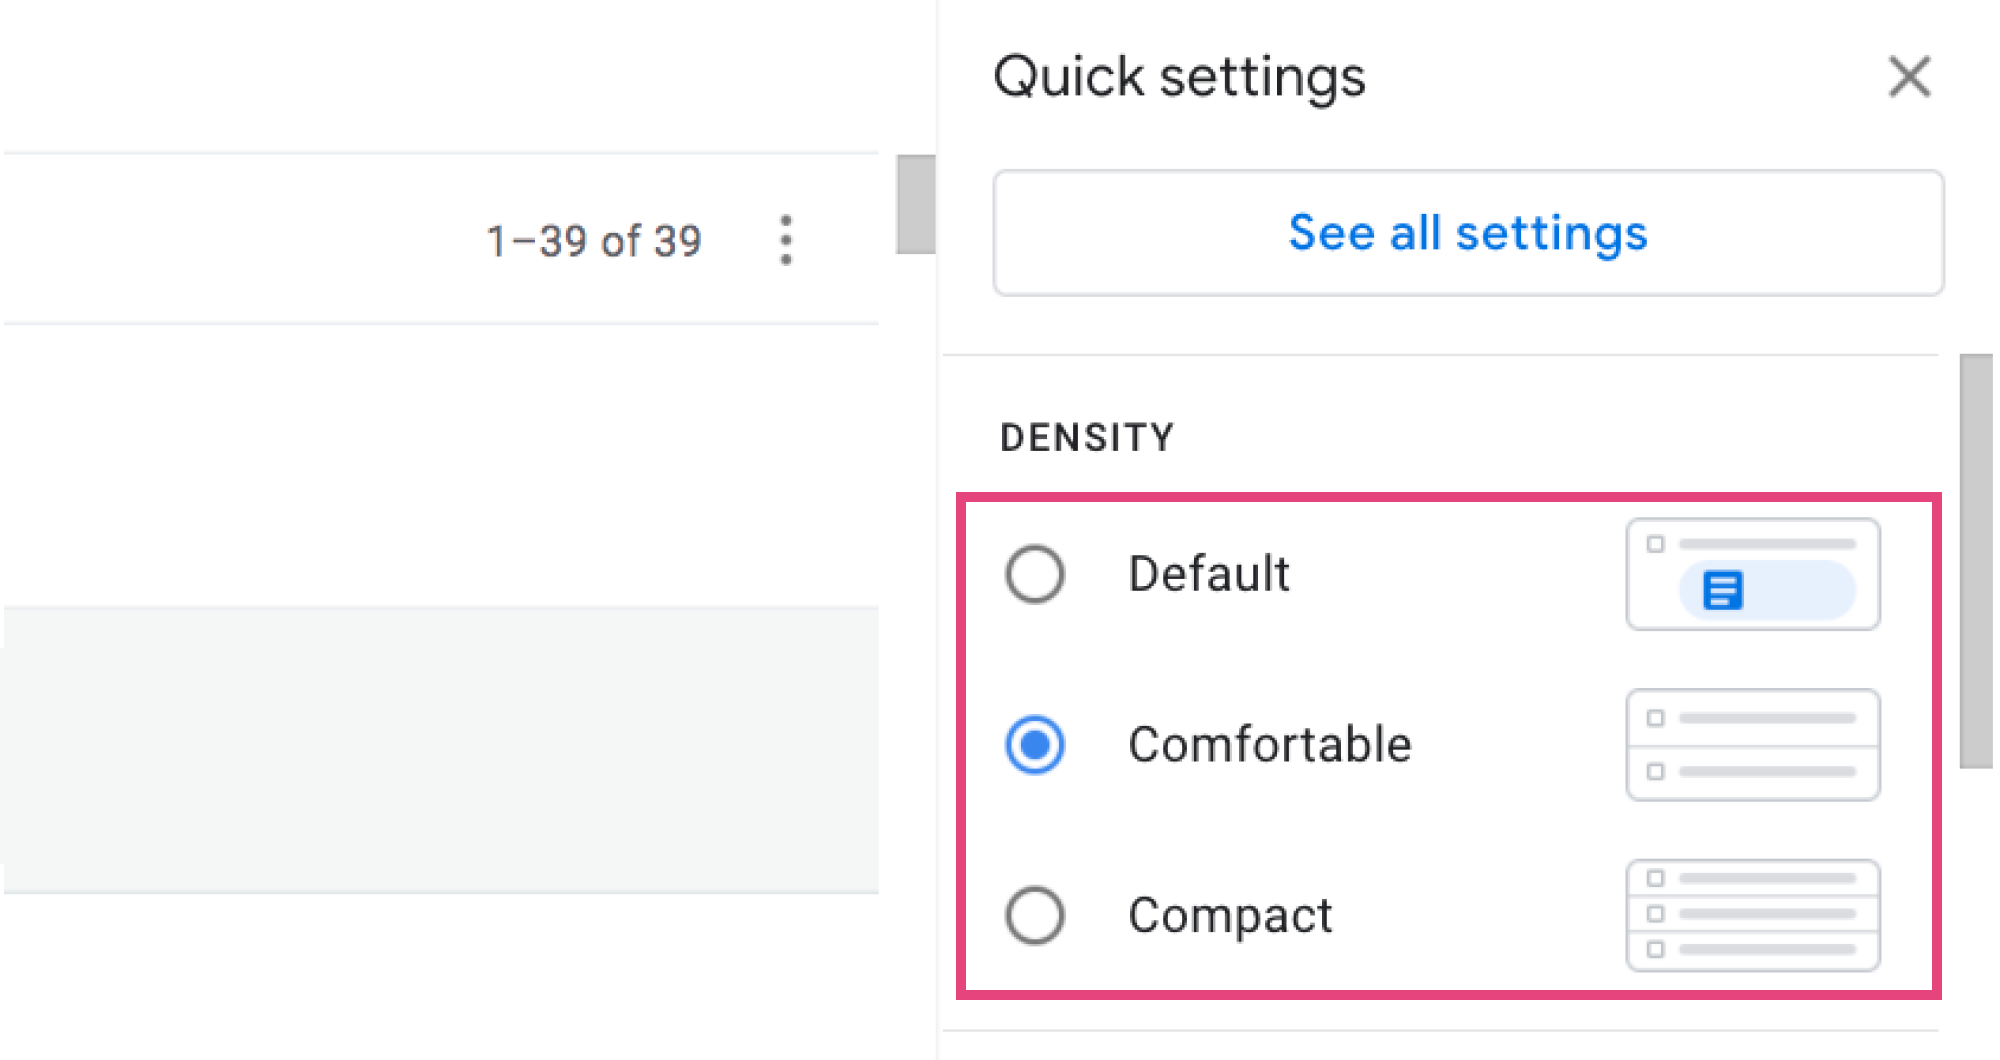 There are three density options that you can choose from. To reveal them, first click on the Settings gear